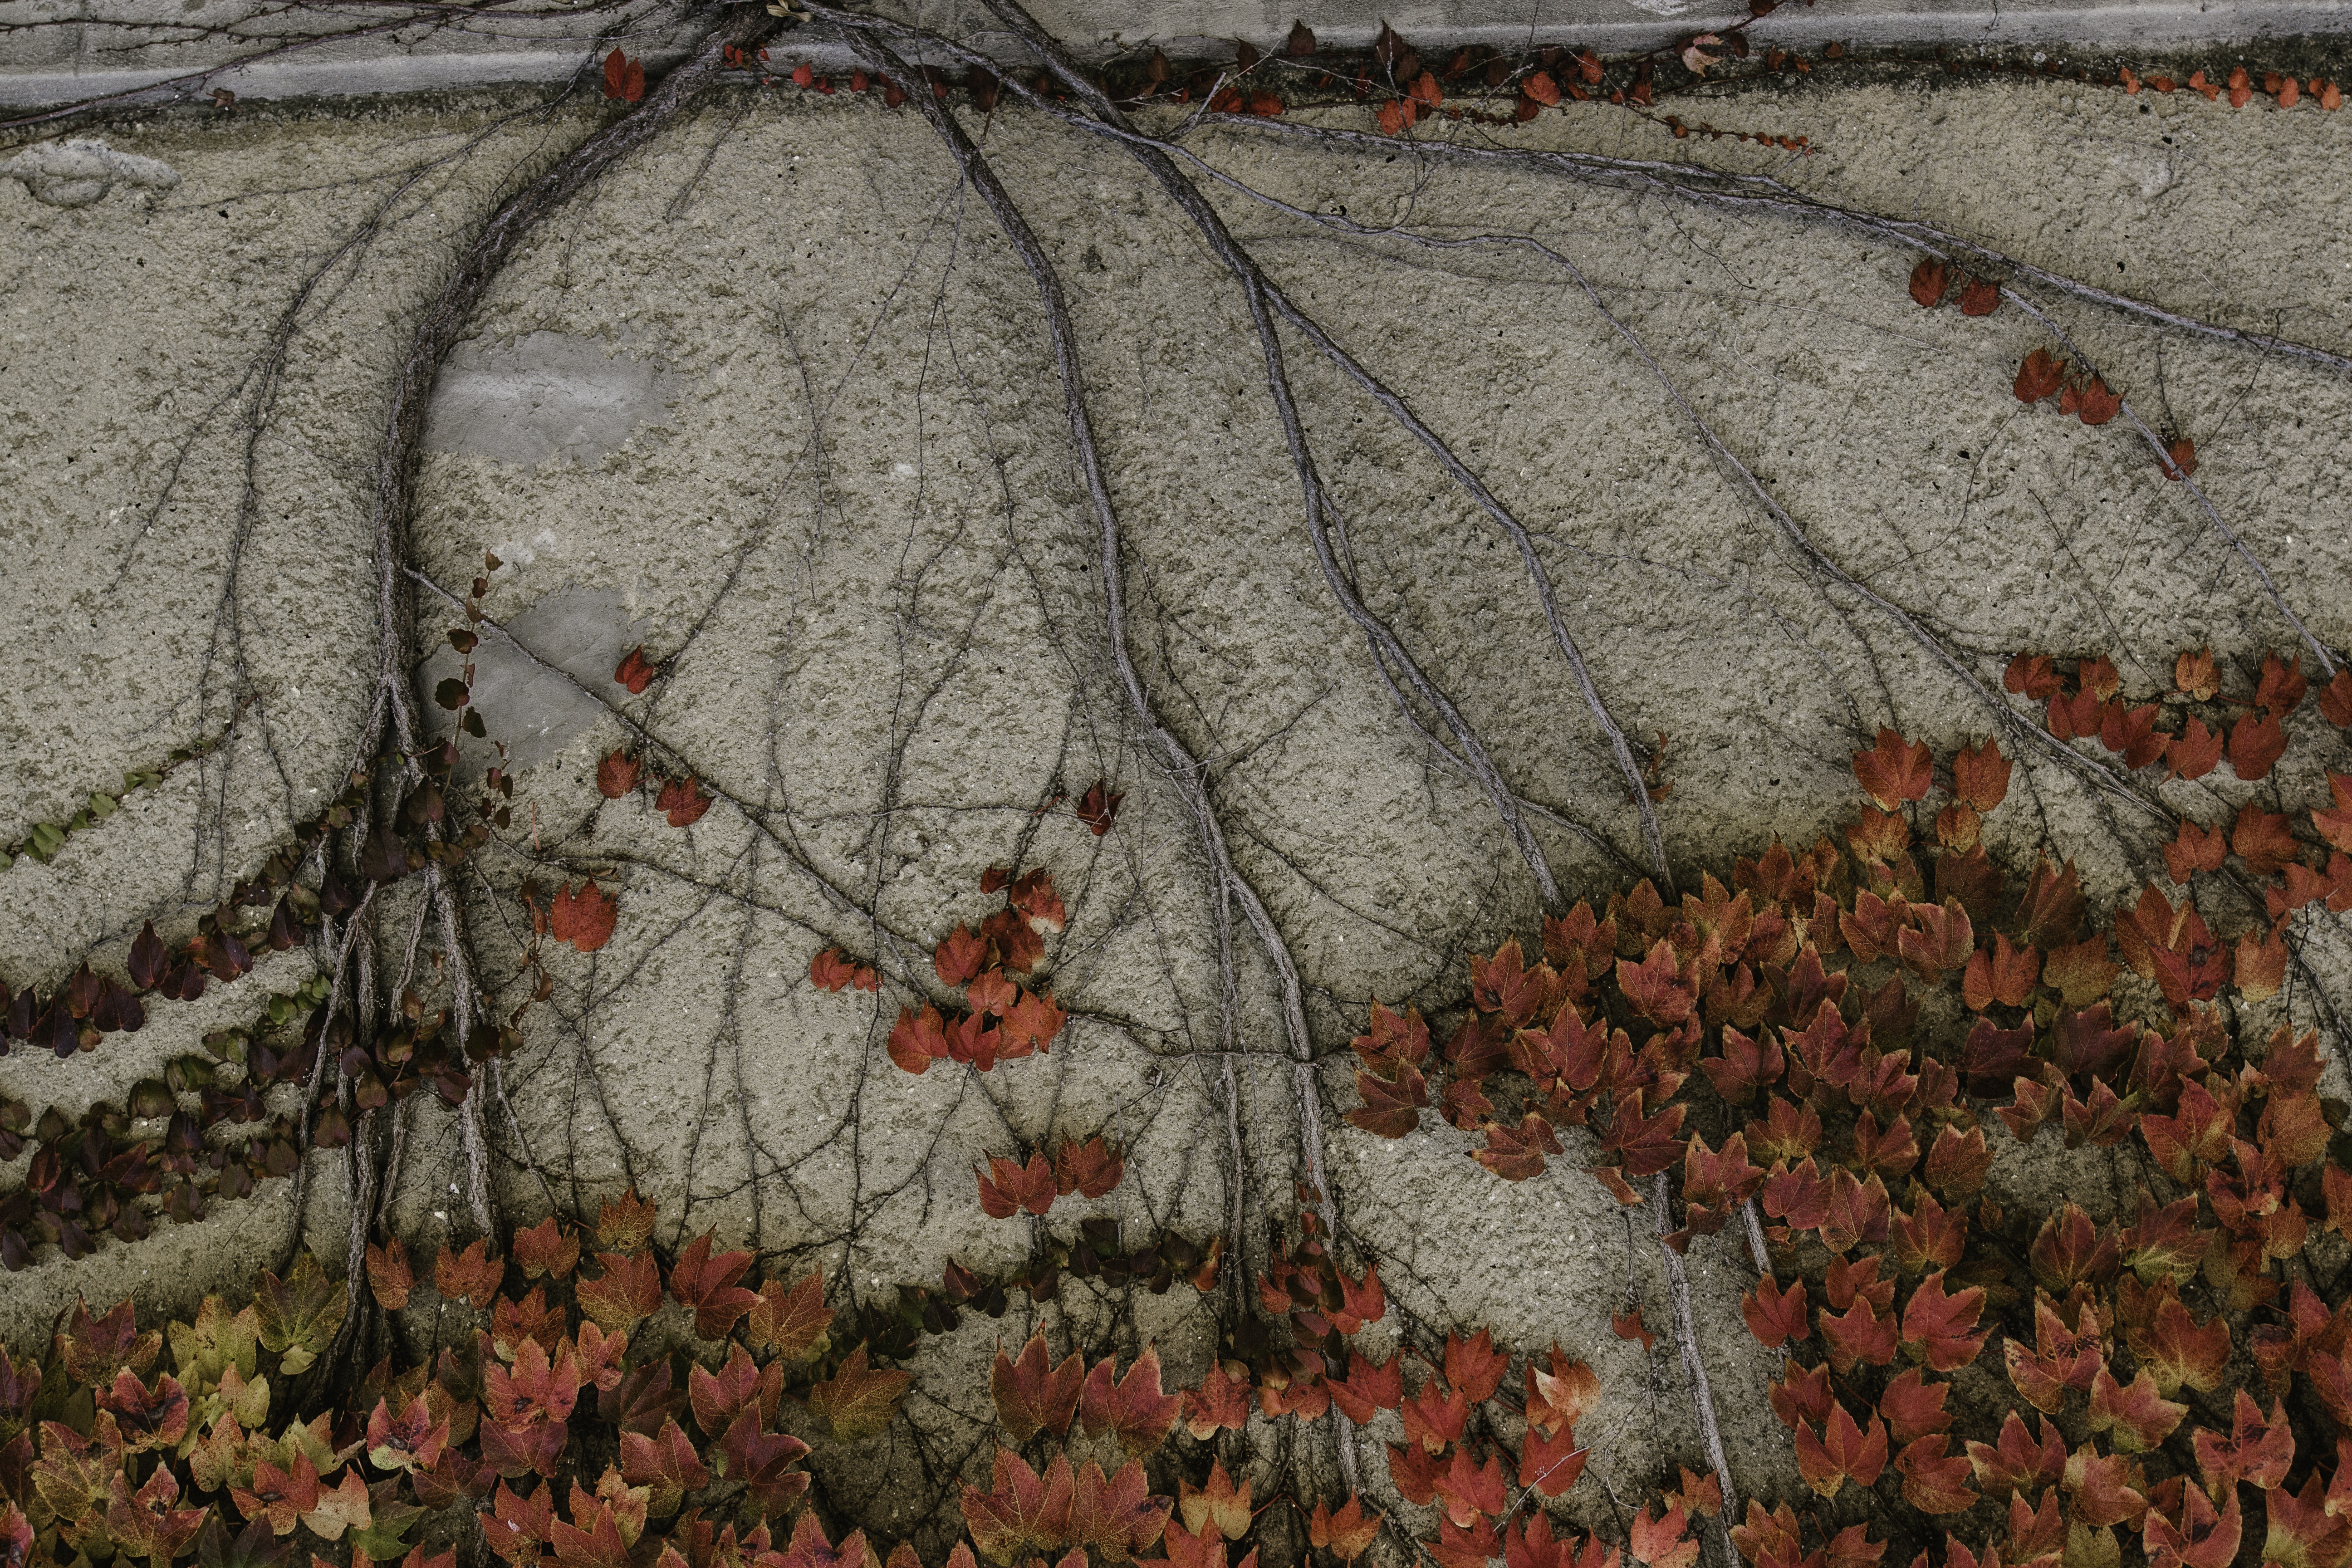 red leafed plants on gray concrete surface